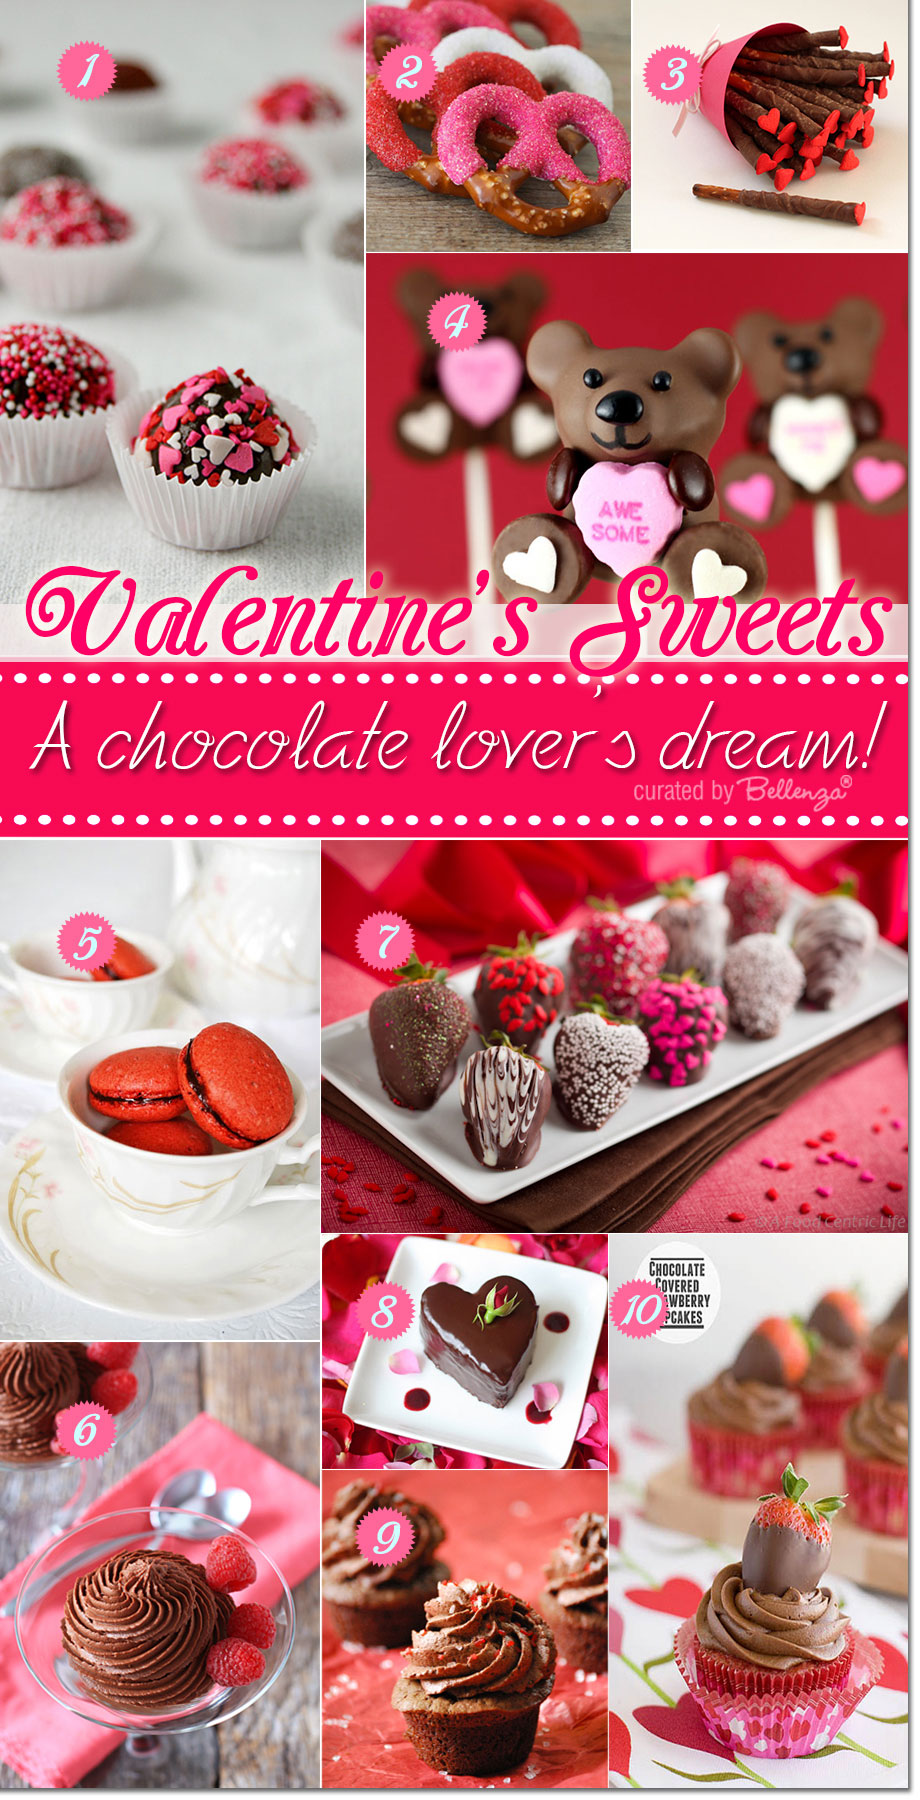 Valentine's chocolate recipe ideas for chocolate lovers